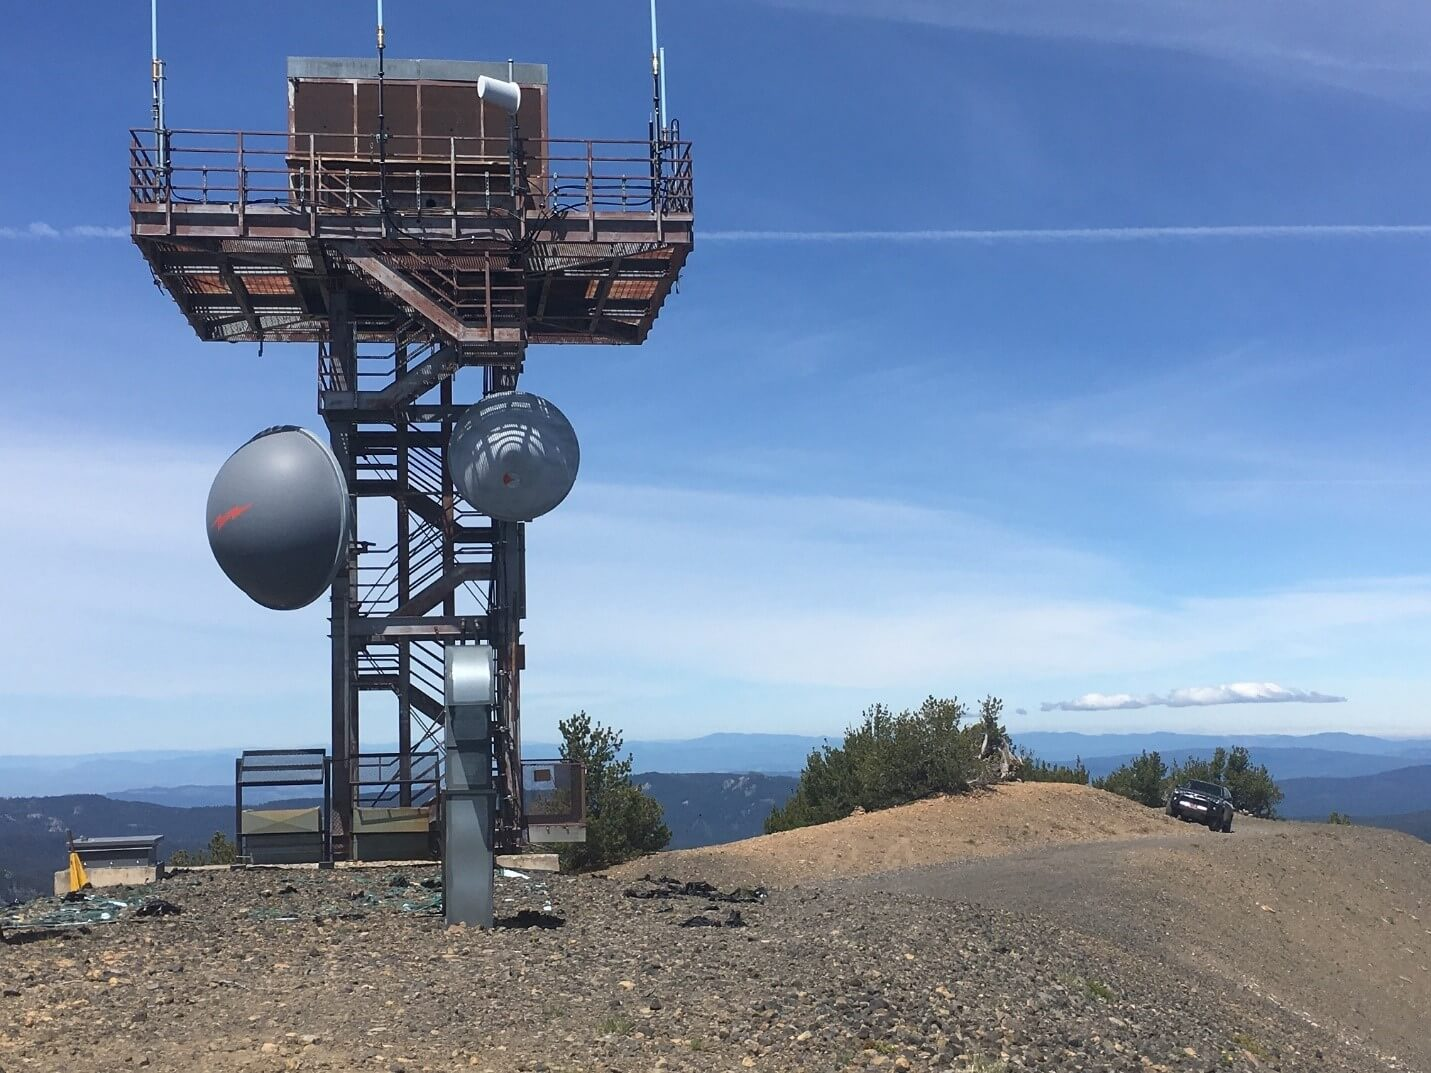 Pelican Butte 4x4 Trail - Fire Lookout Tower